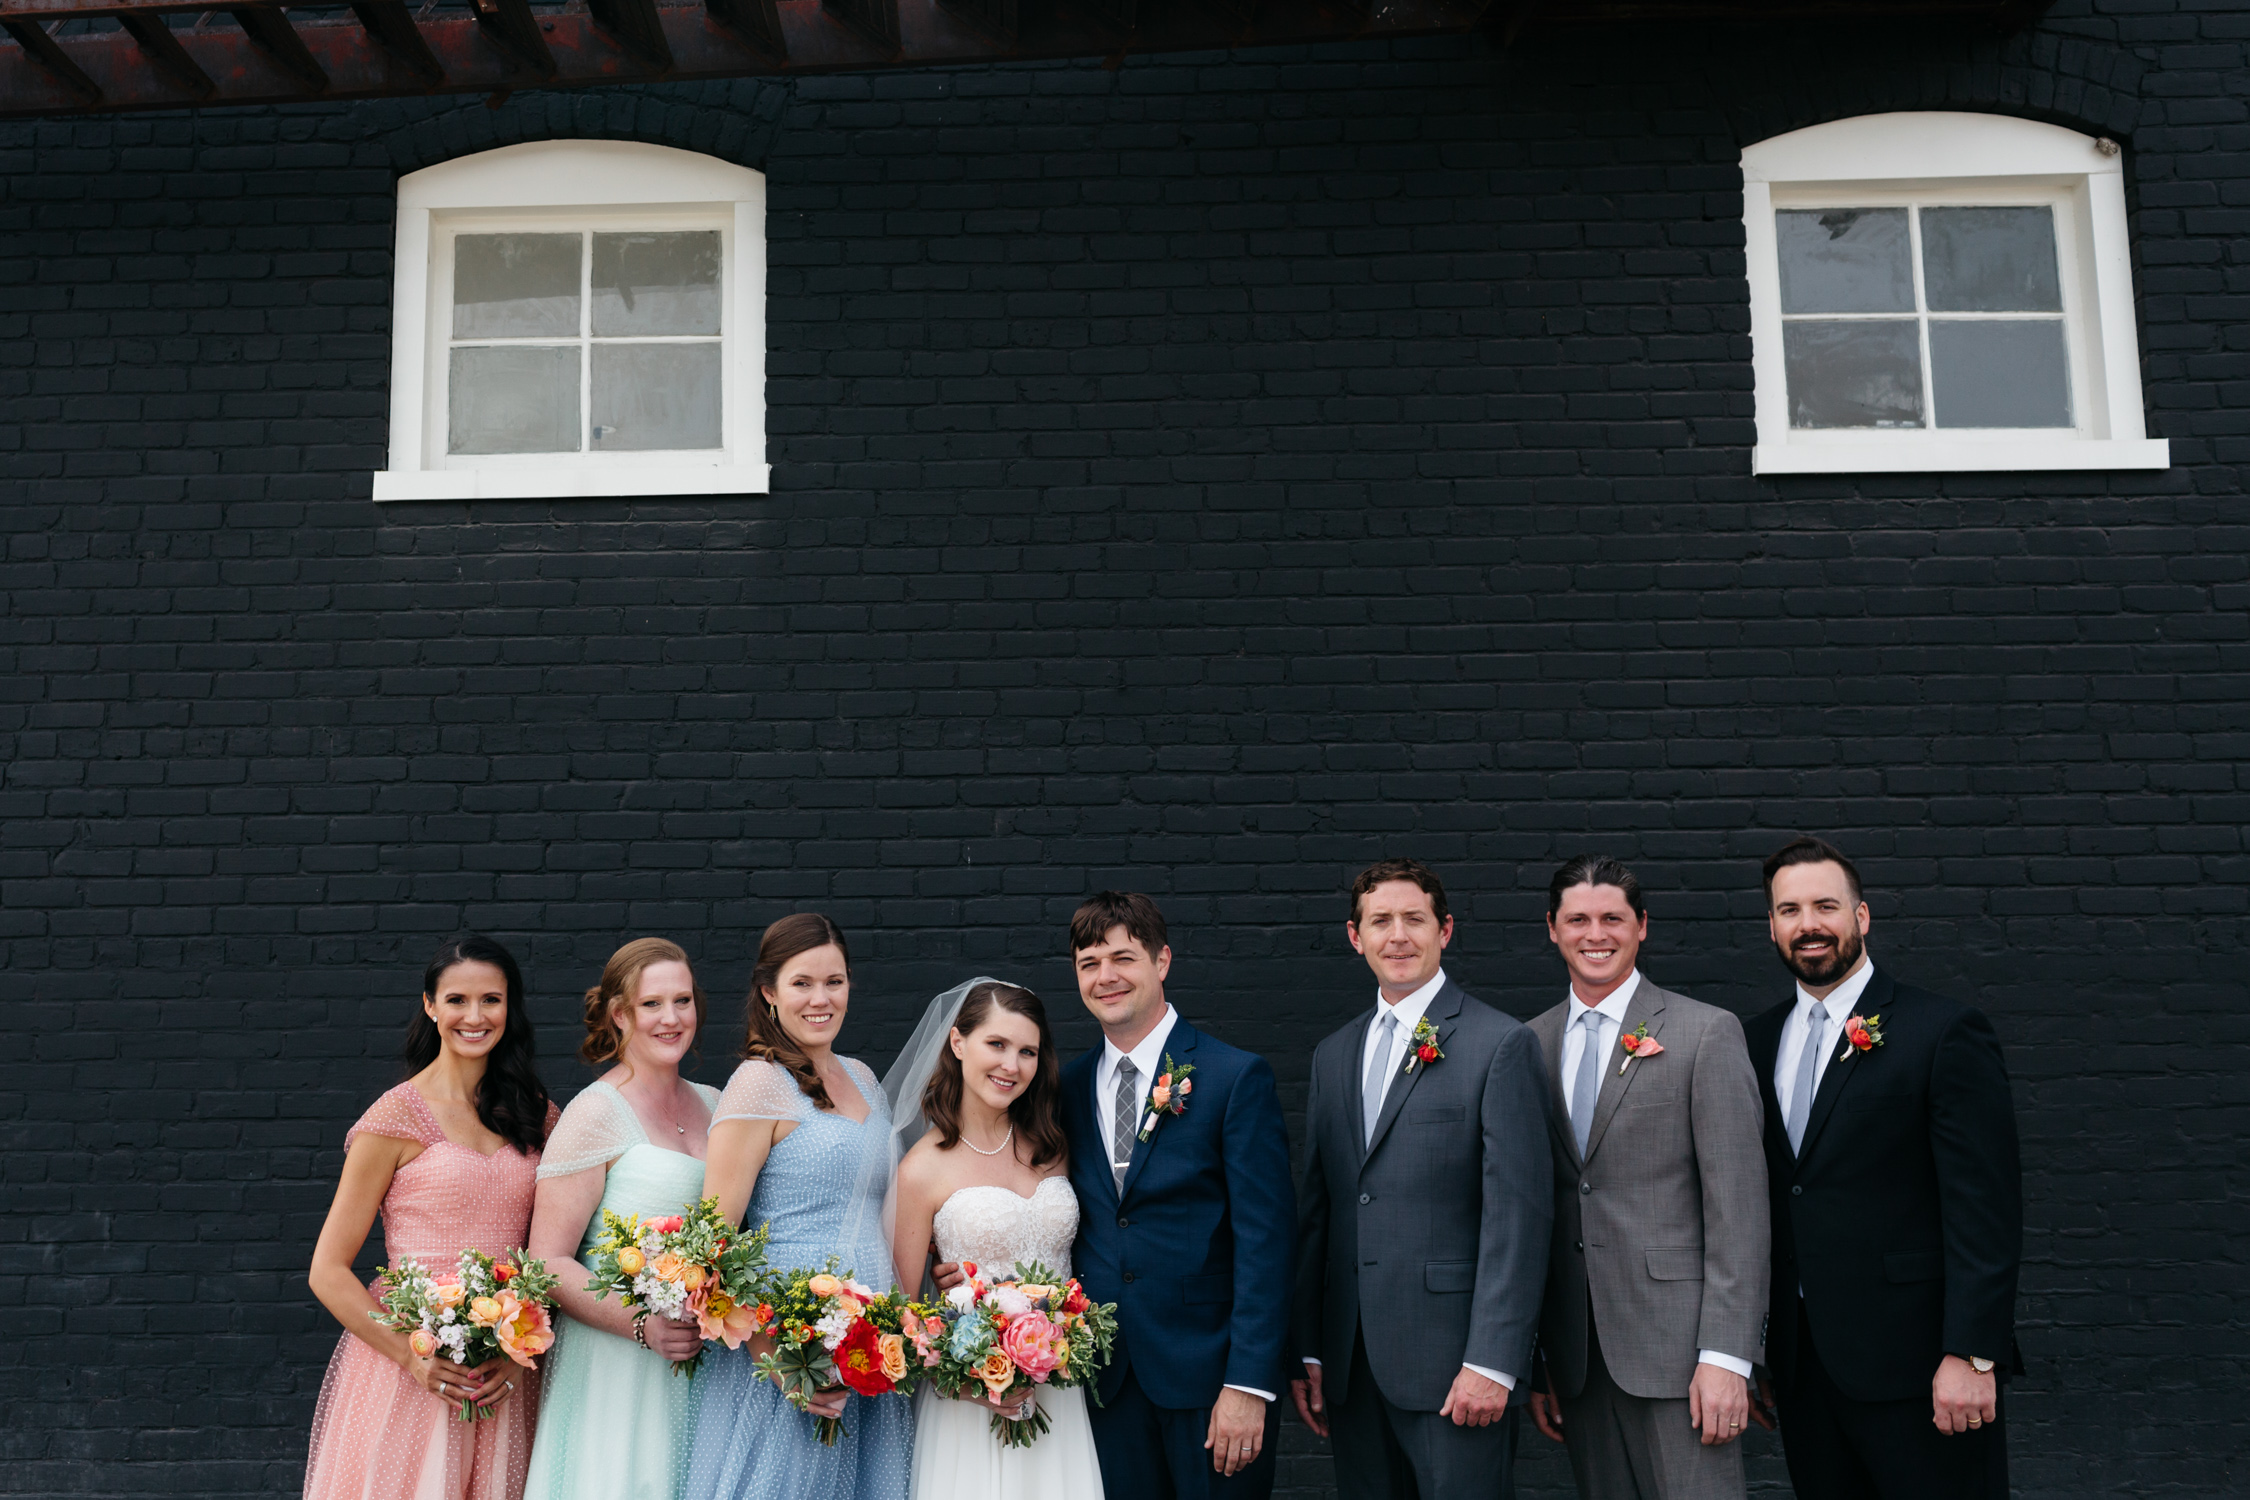 Standard Downtown Knoxville Wedding Venue Central Avenue Happy Holler Bridal Party